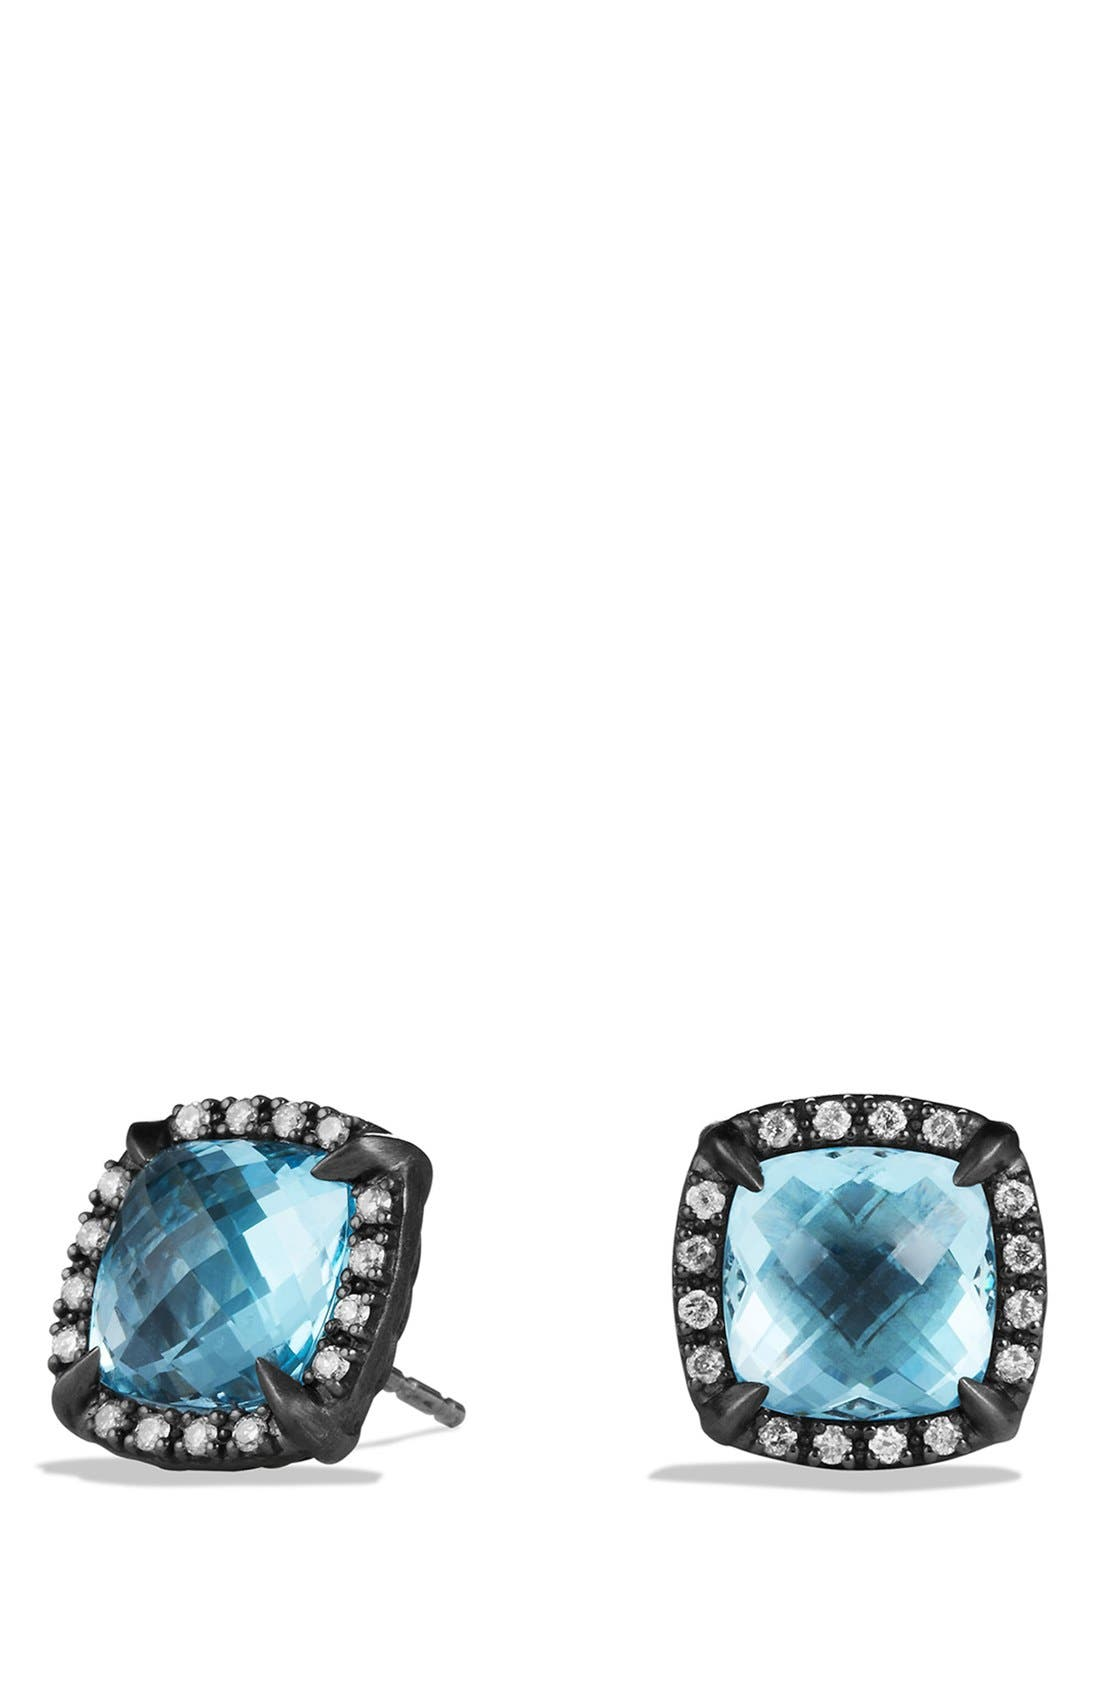 'Châtelaine' Earrings with Semiprecious Stone and Diamonds,                         Main,                         color, 400